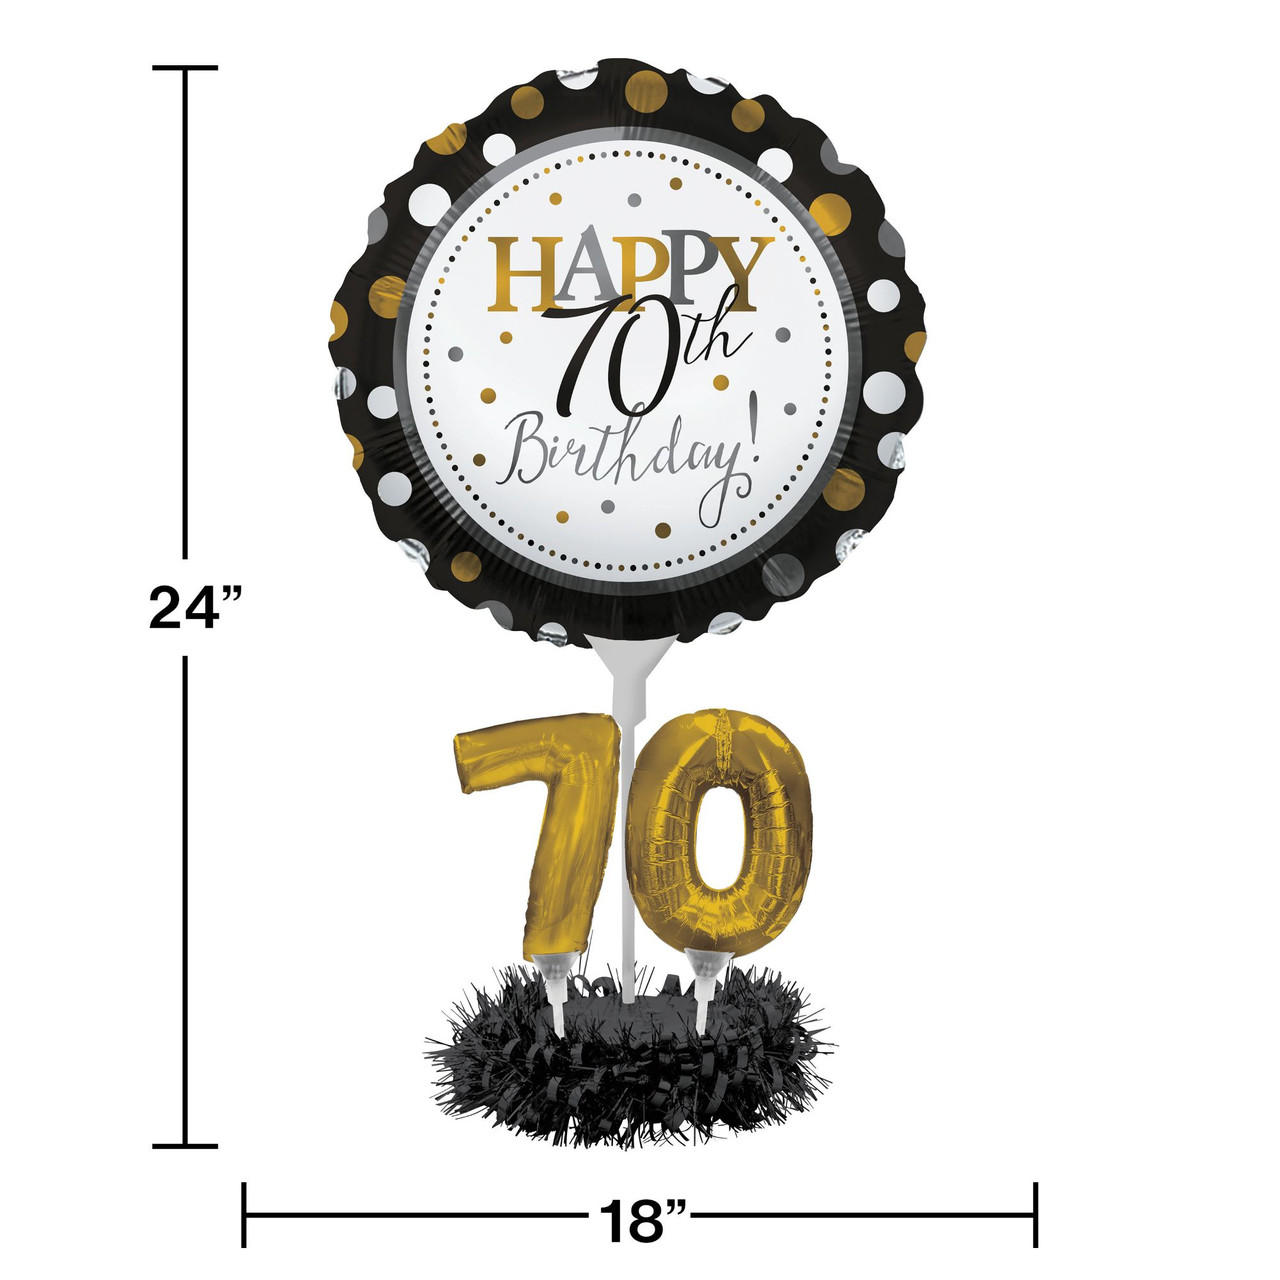 Set Of 4 Happy 70th Birthday Foil Party Balloon Centerpiece Kits